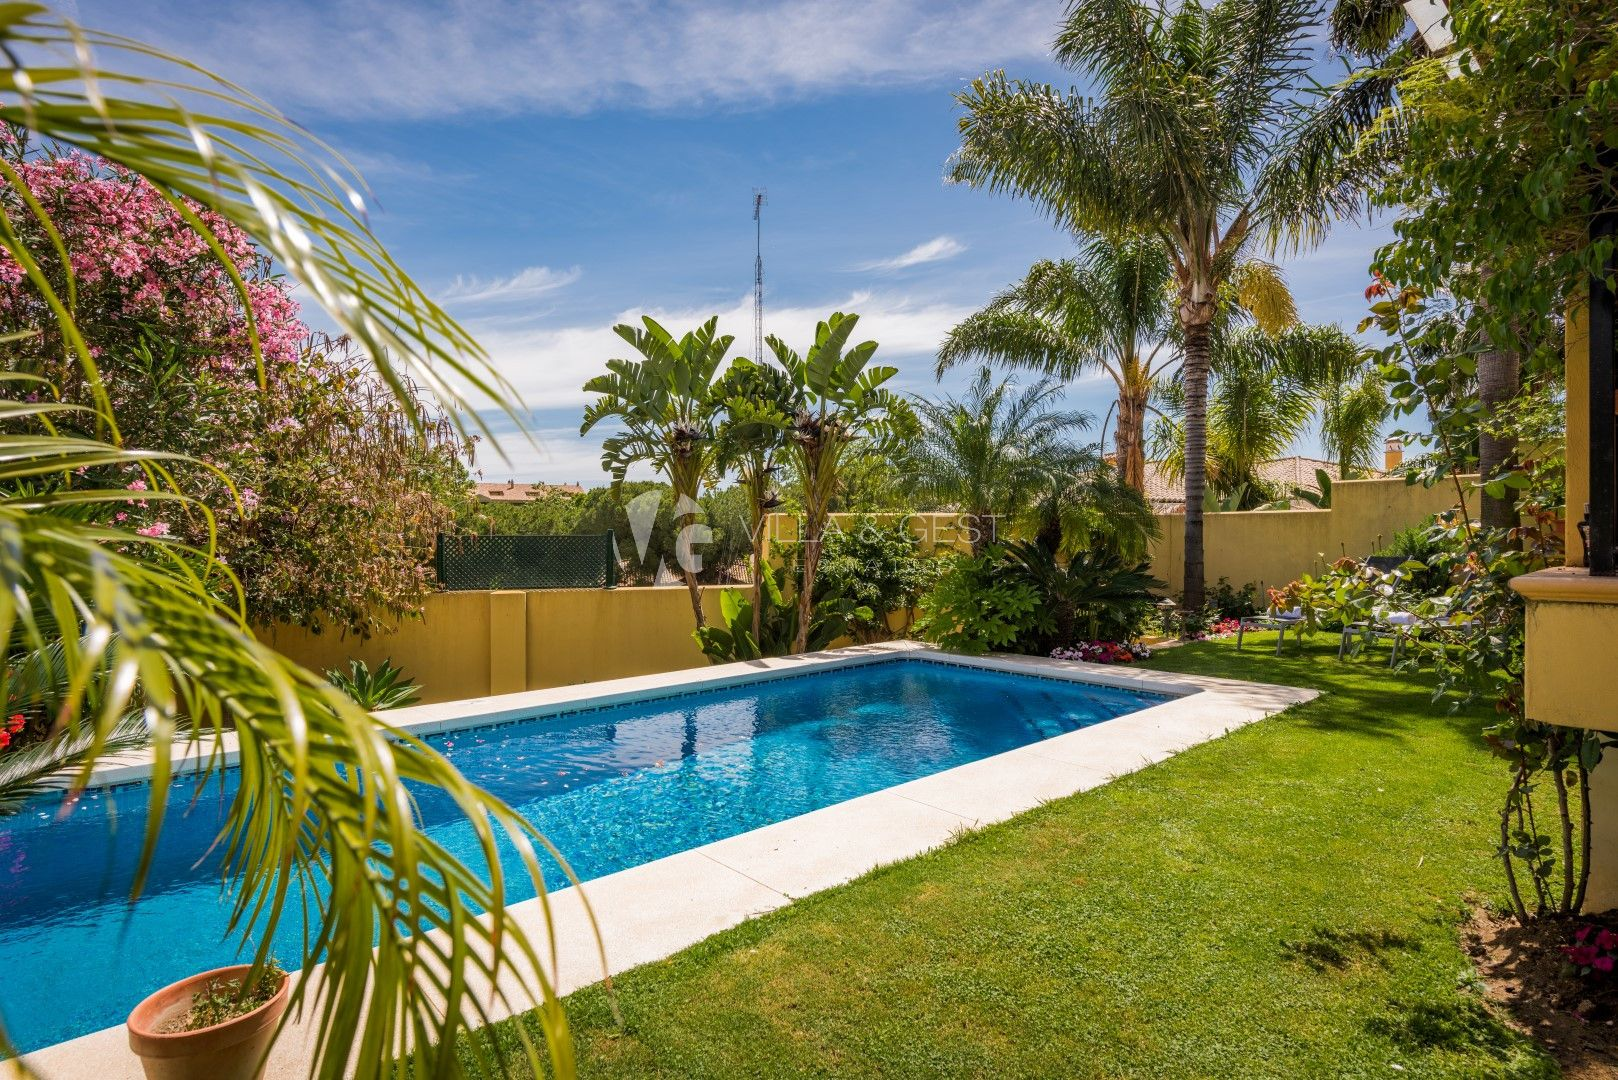 SEMI DETACHED HOUSE IN GUADALMINA ALTA